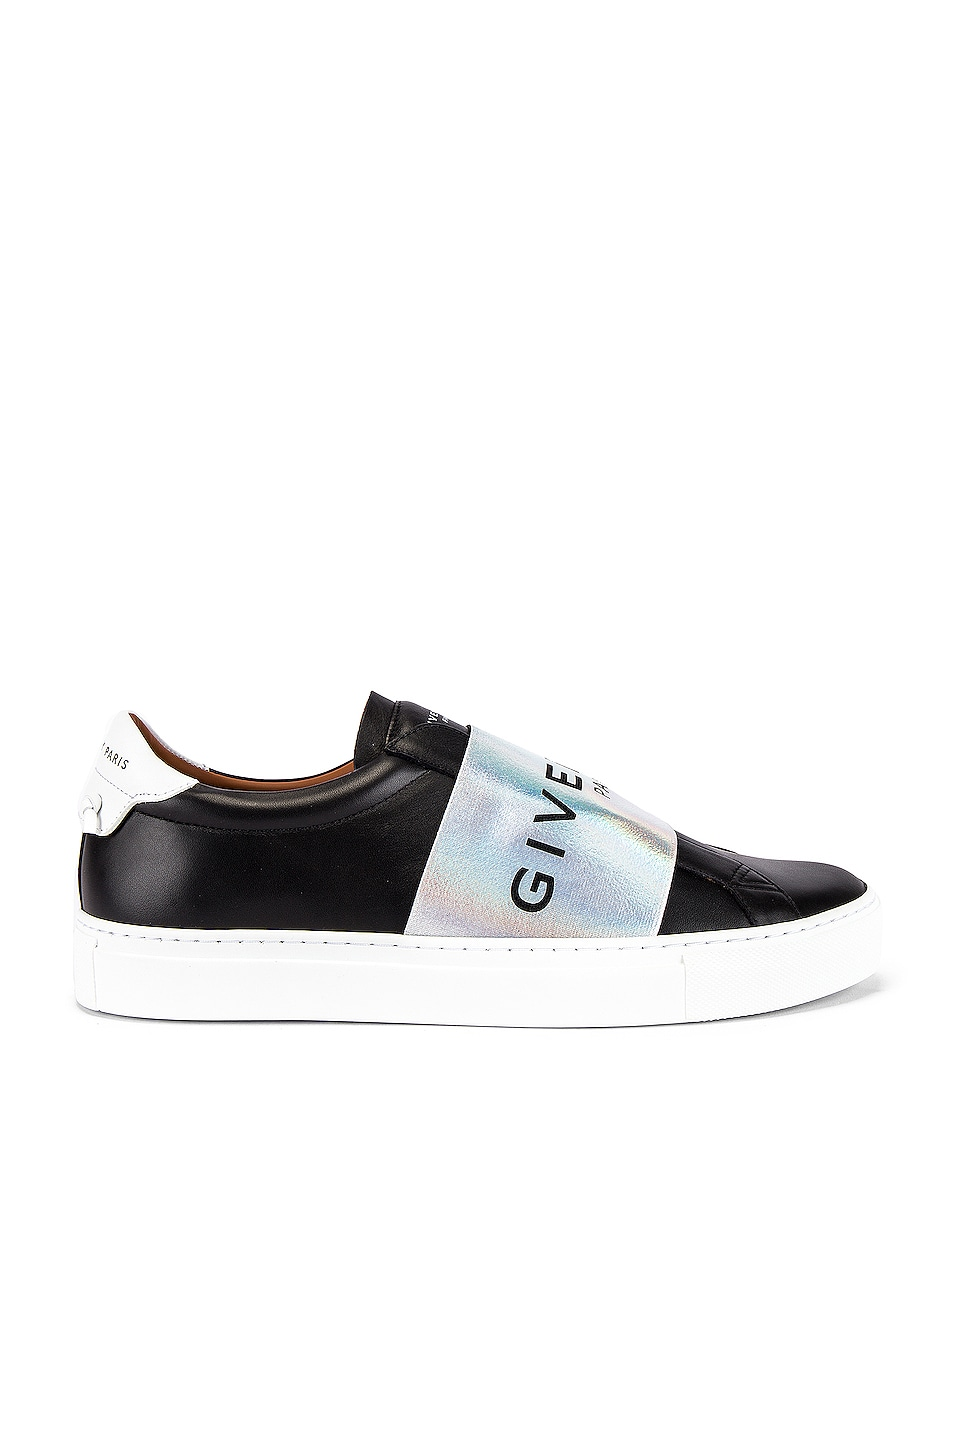 Image 2 of Givenchy Urban Street Elastic Sneakers in Black & White